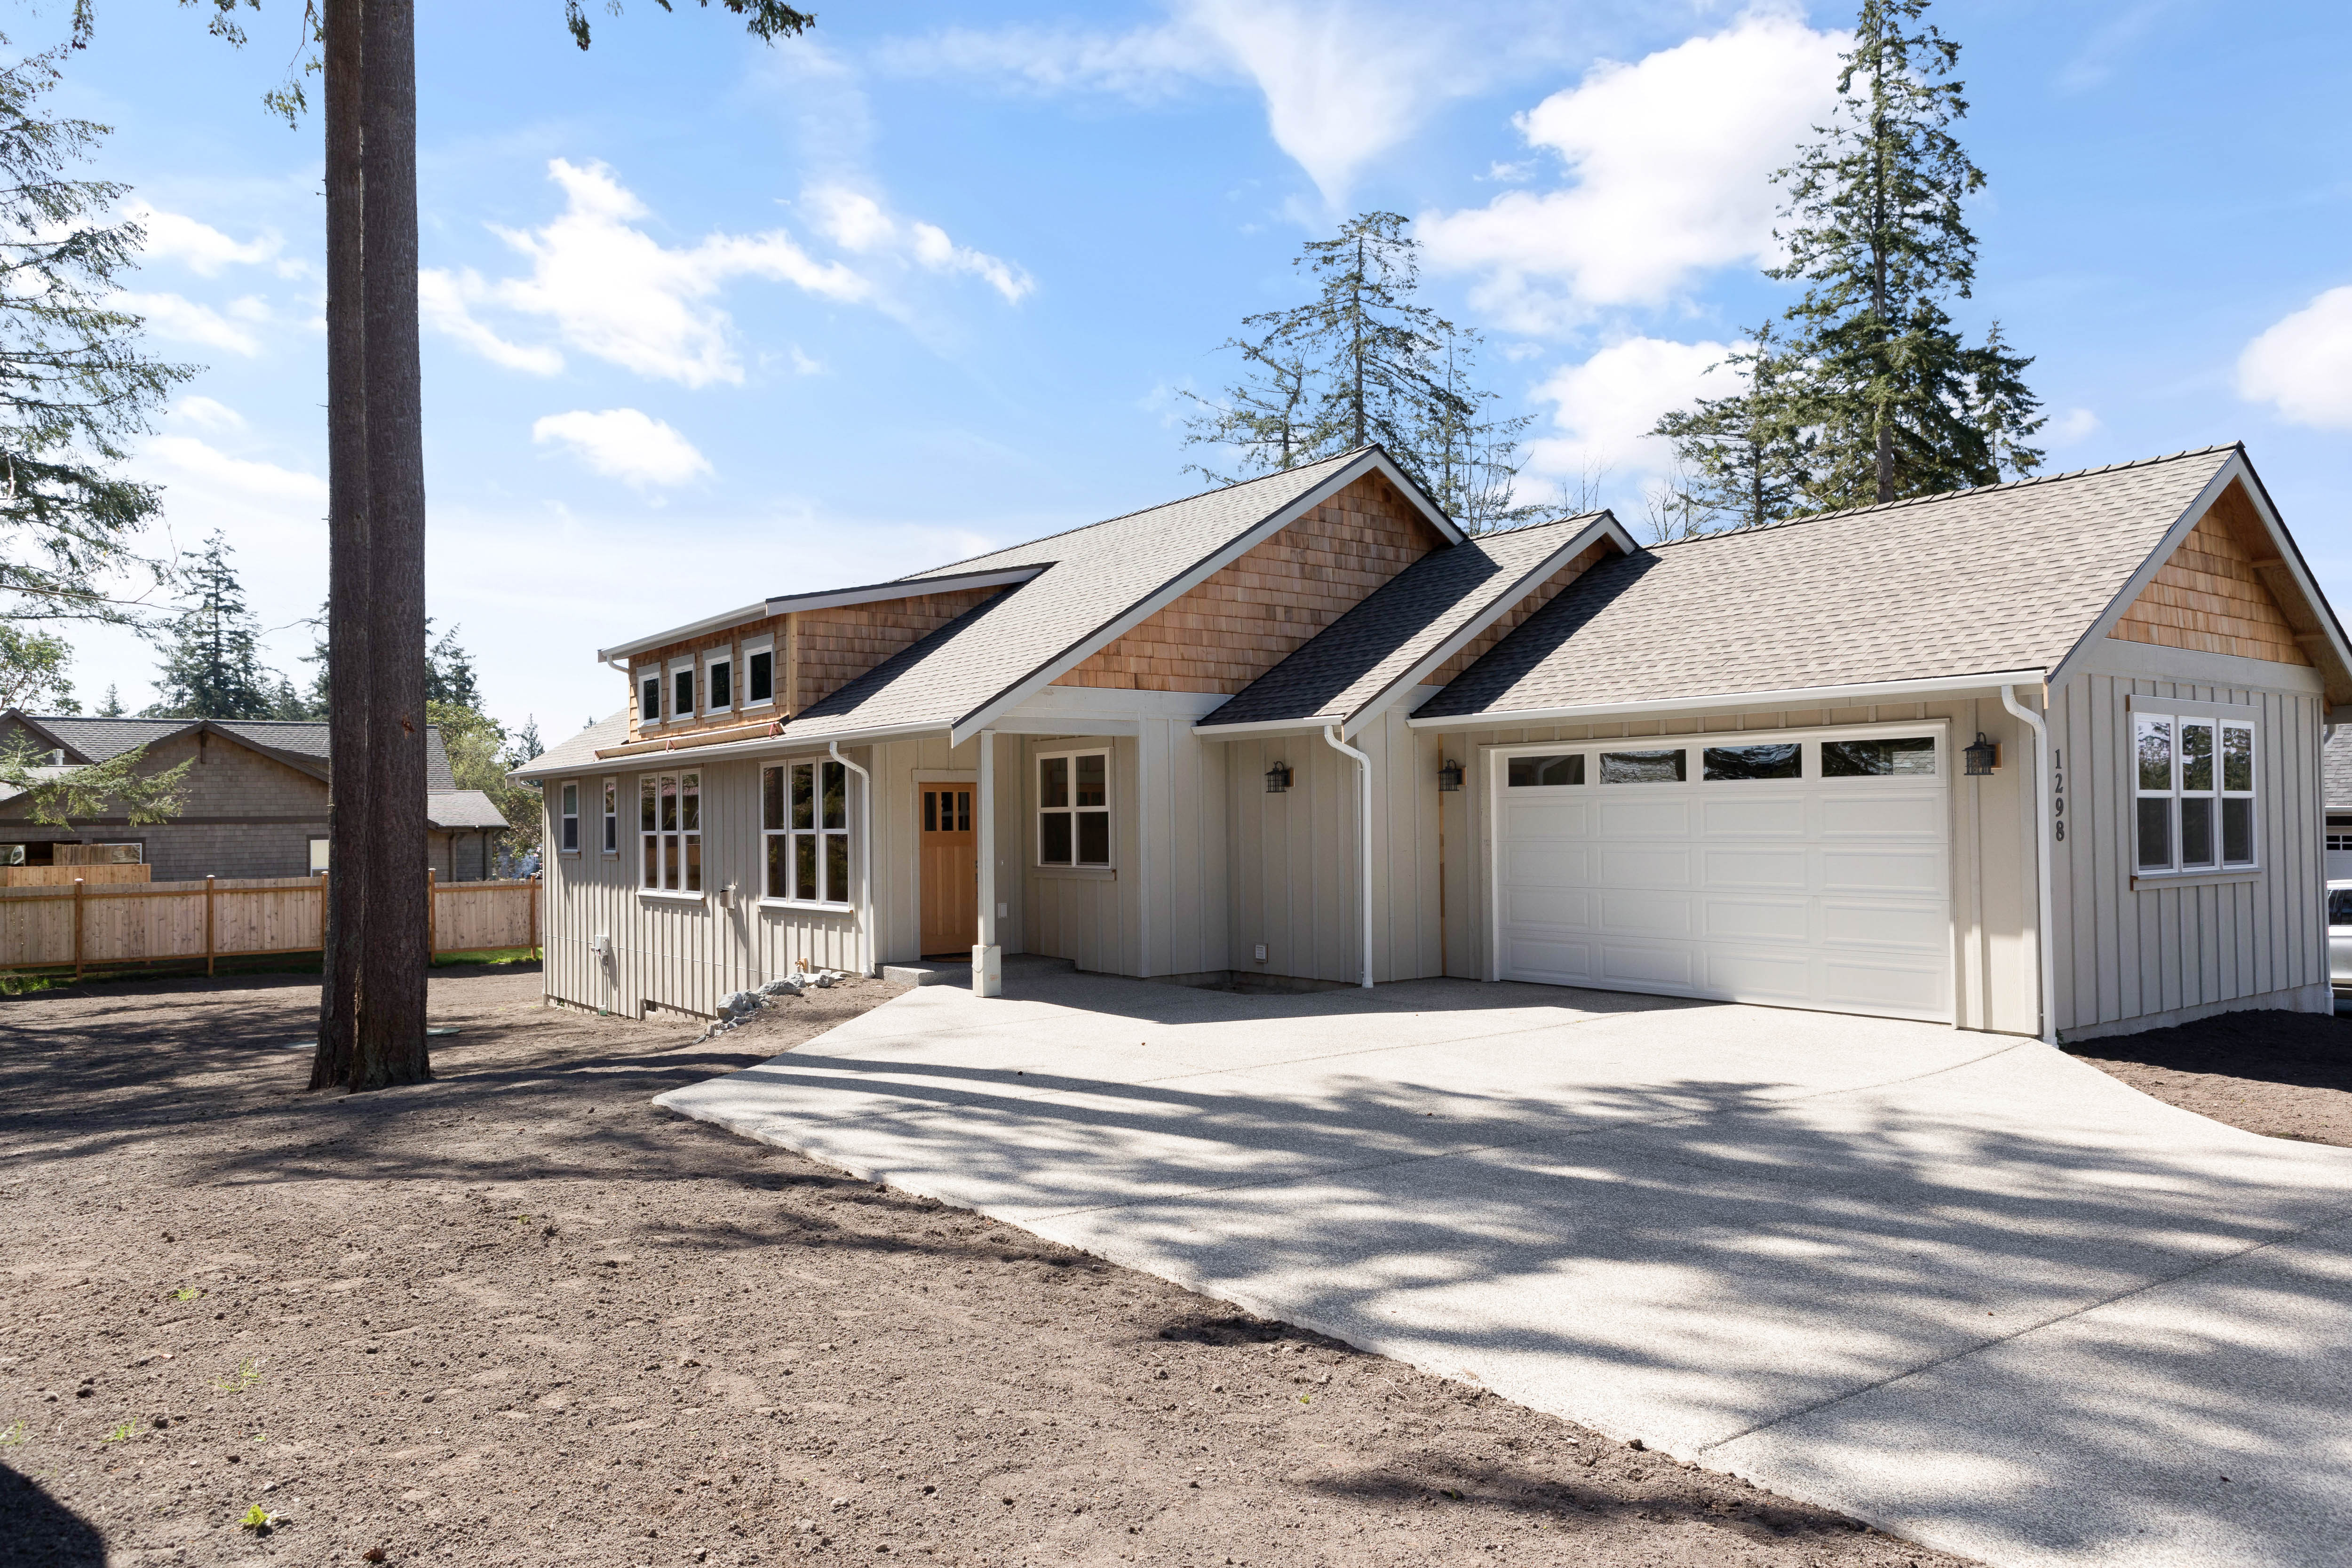 Home, Tim Criswell, Whidbey Island, Windermere real estate, Realtor